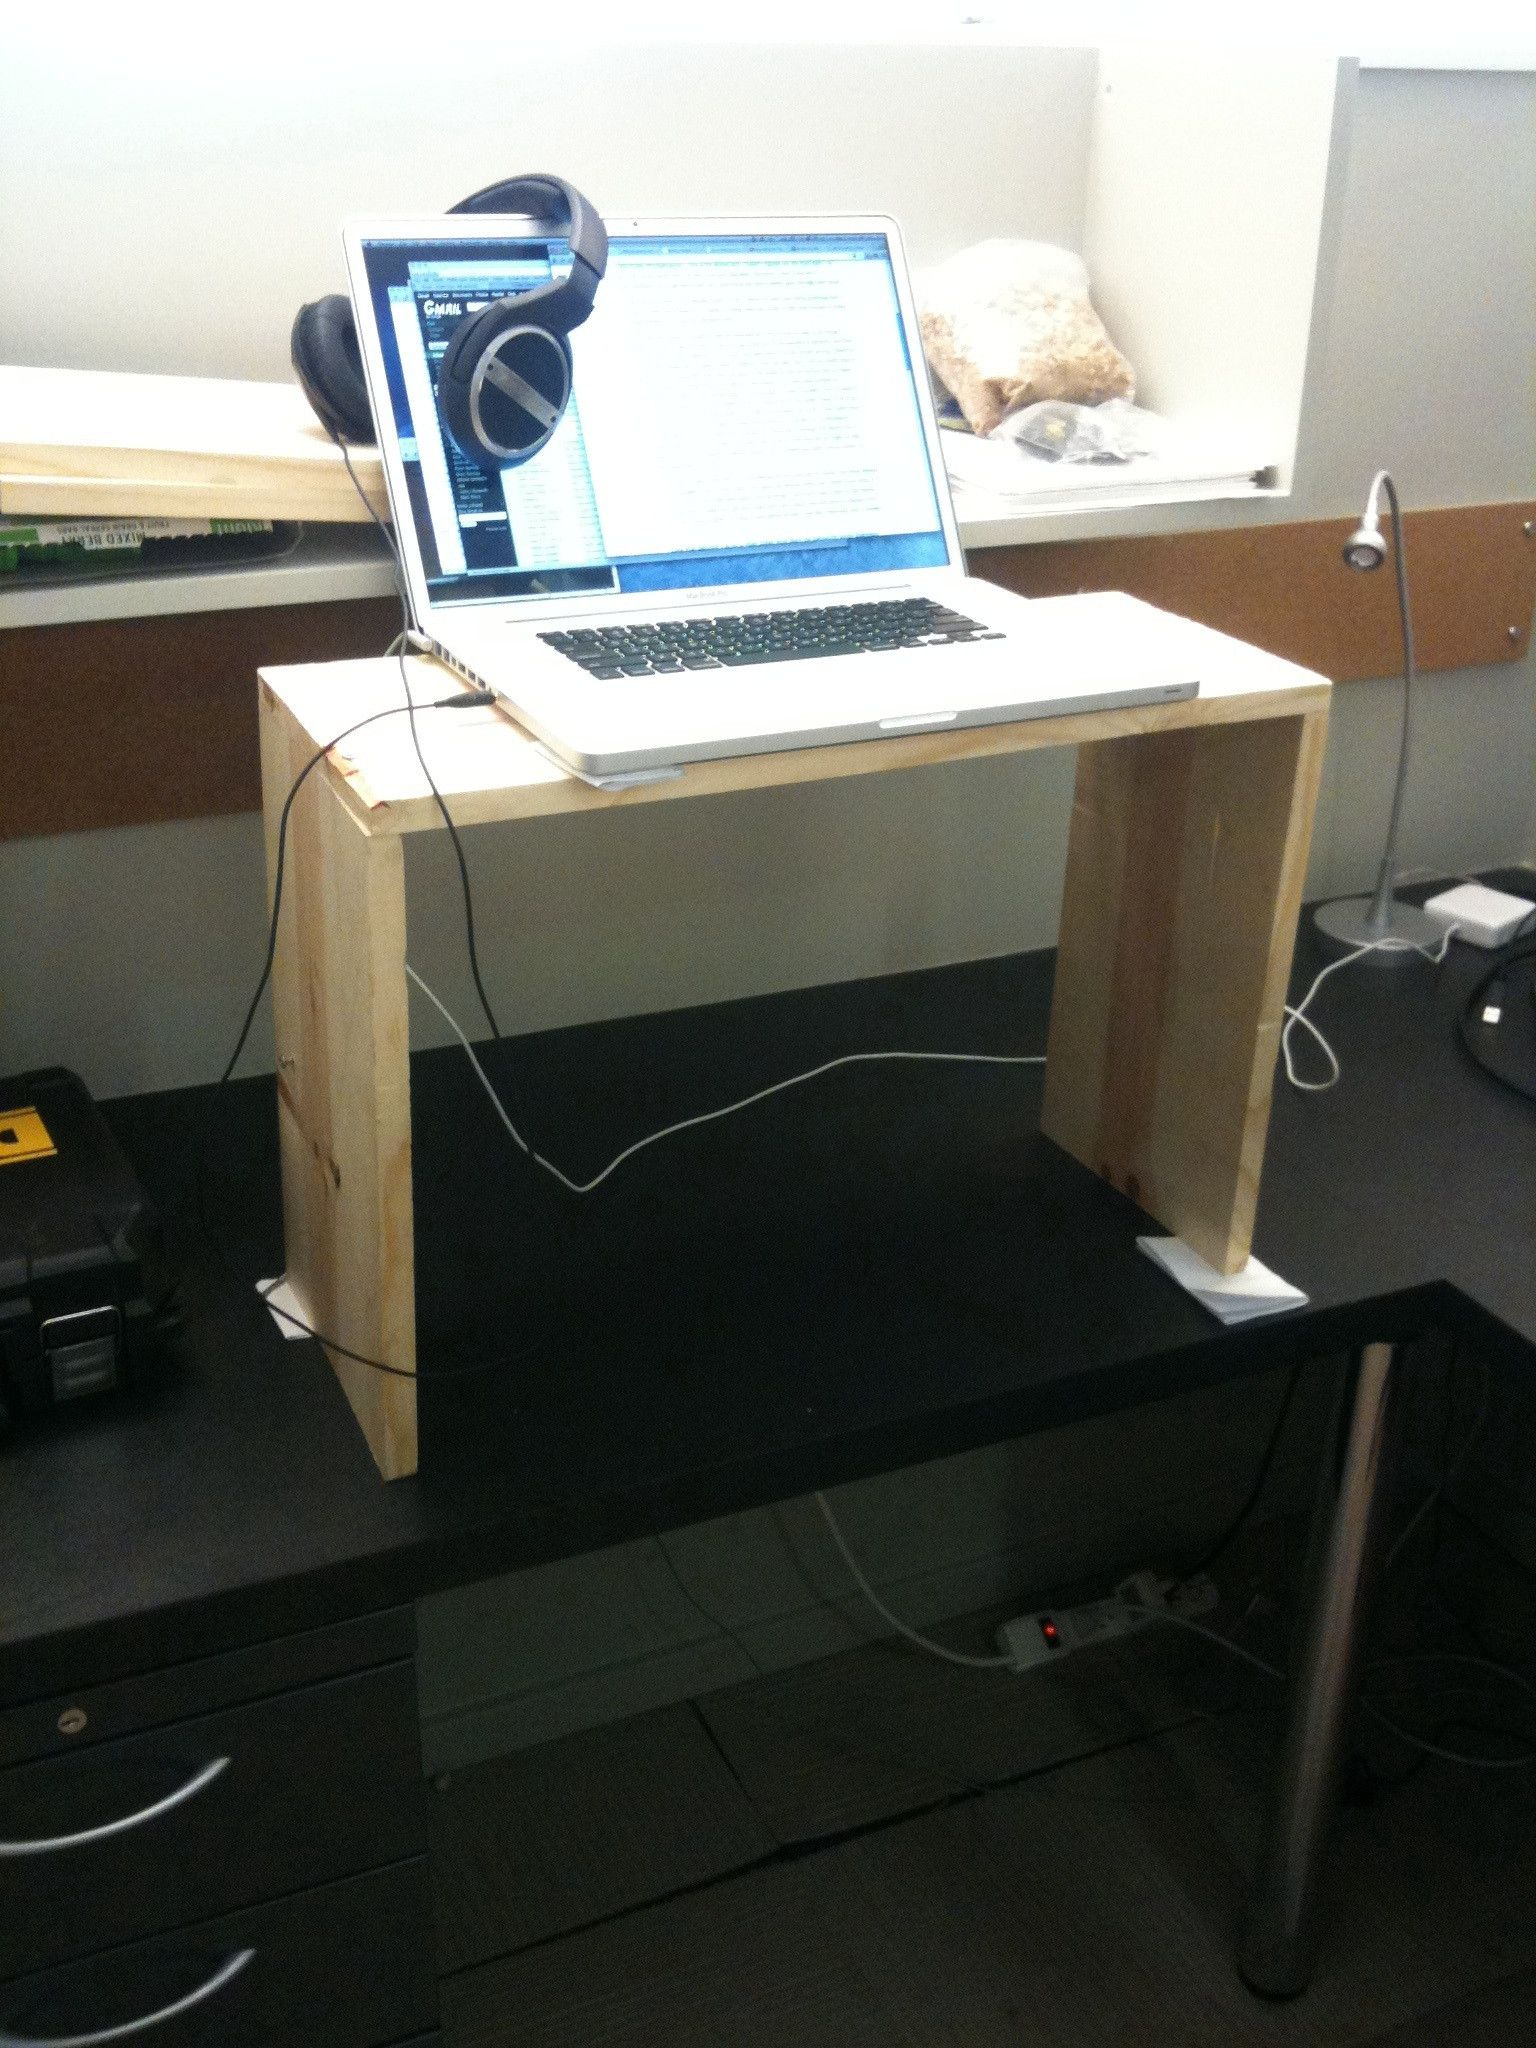 How To Modify Your Existing Desk To Make It A Standing Desk Diy Standing Desk Standing Desk Stand Up Desk